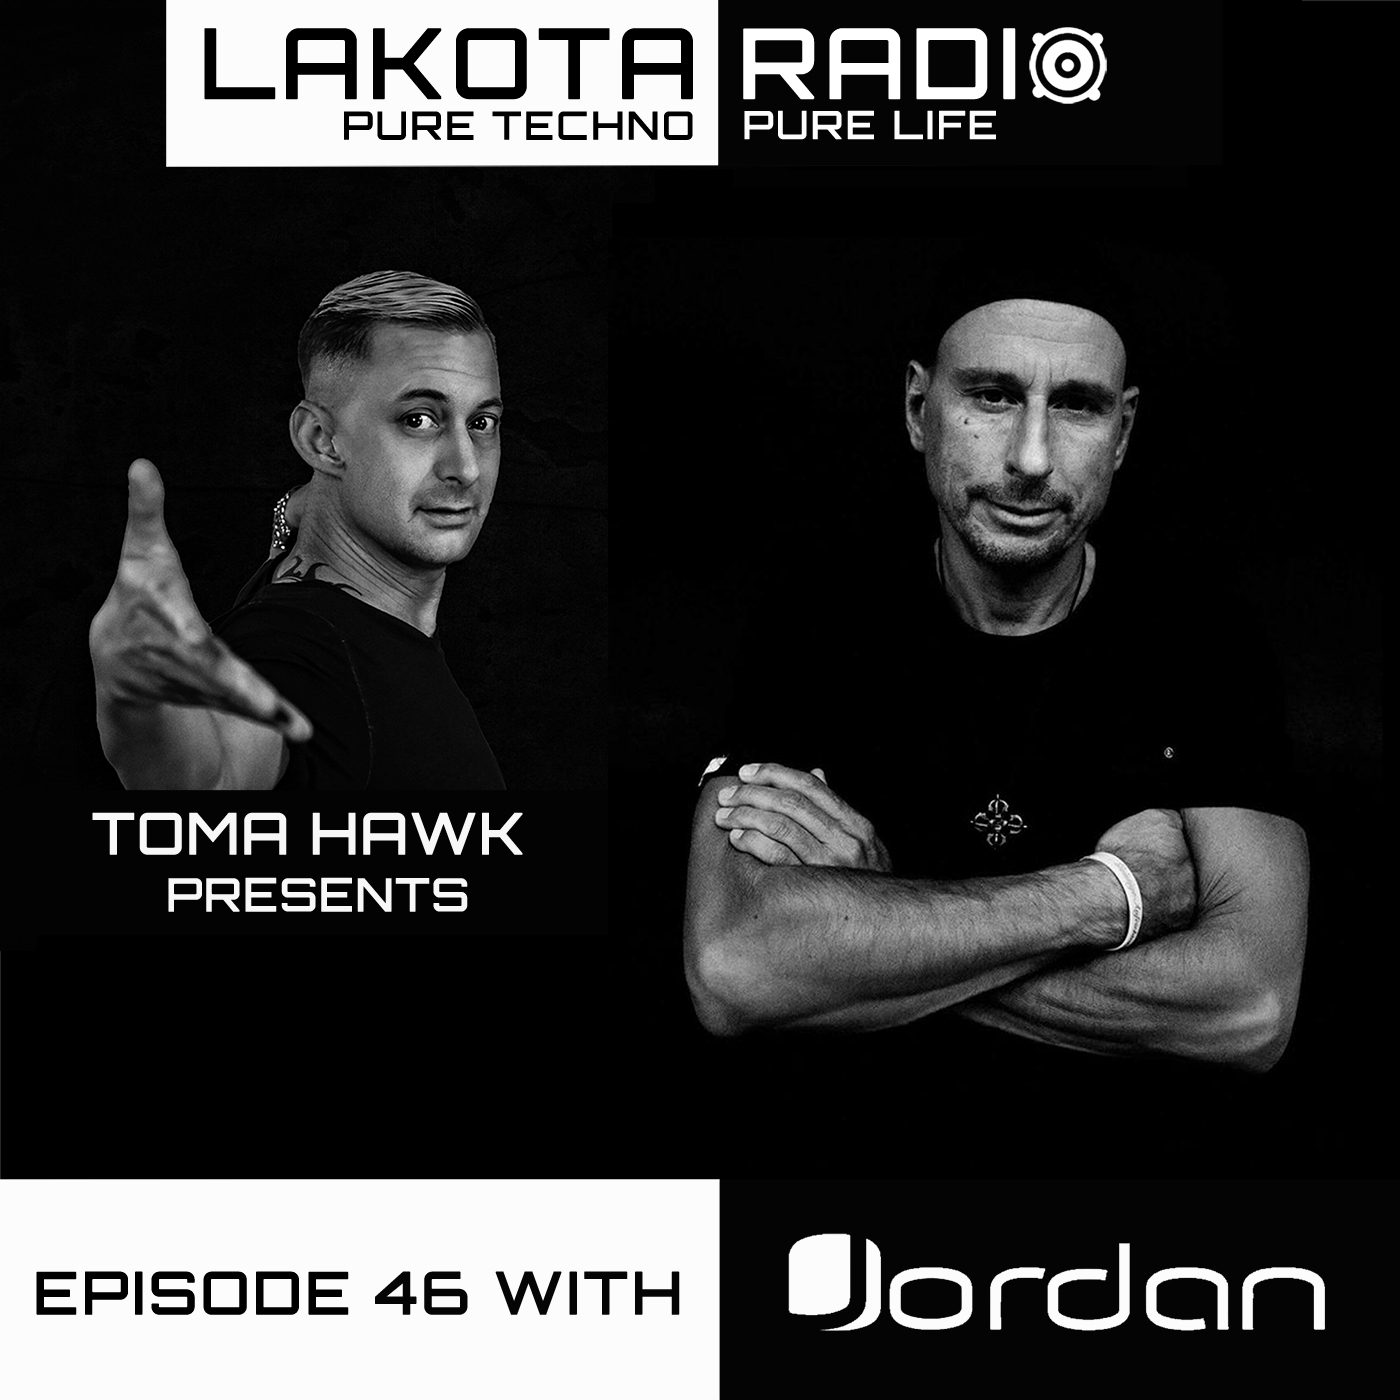 toma_hawk_lakota_radio_046_with_dj_jordan